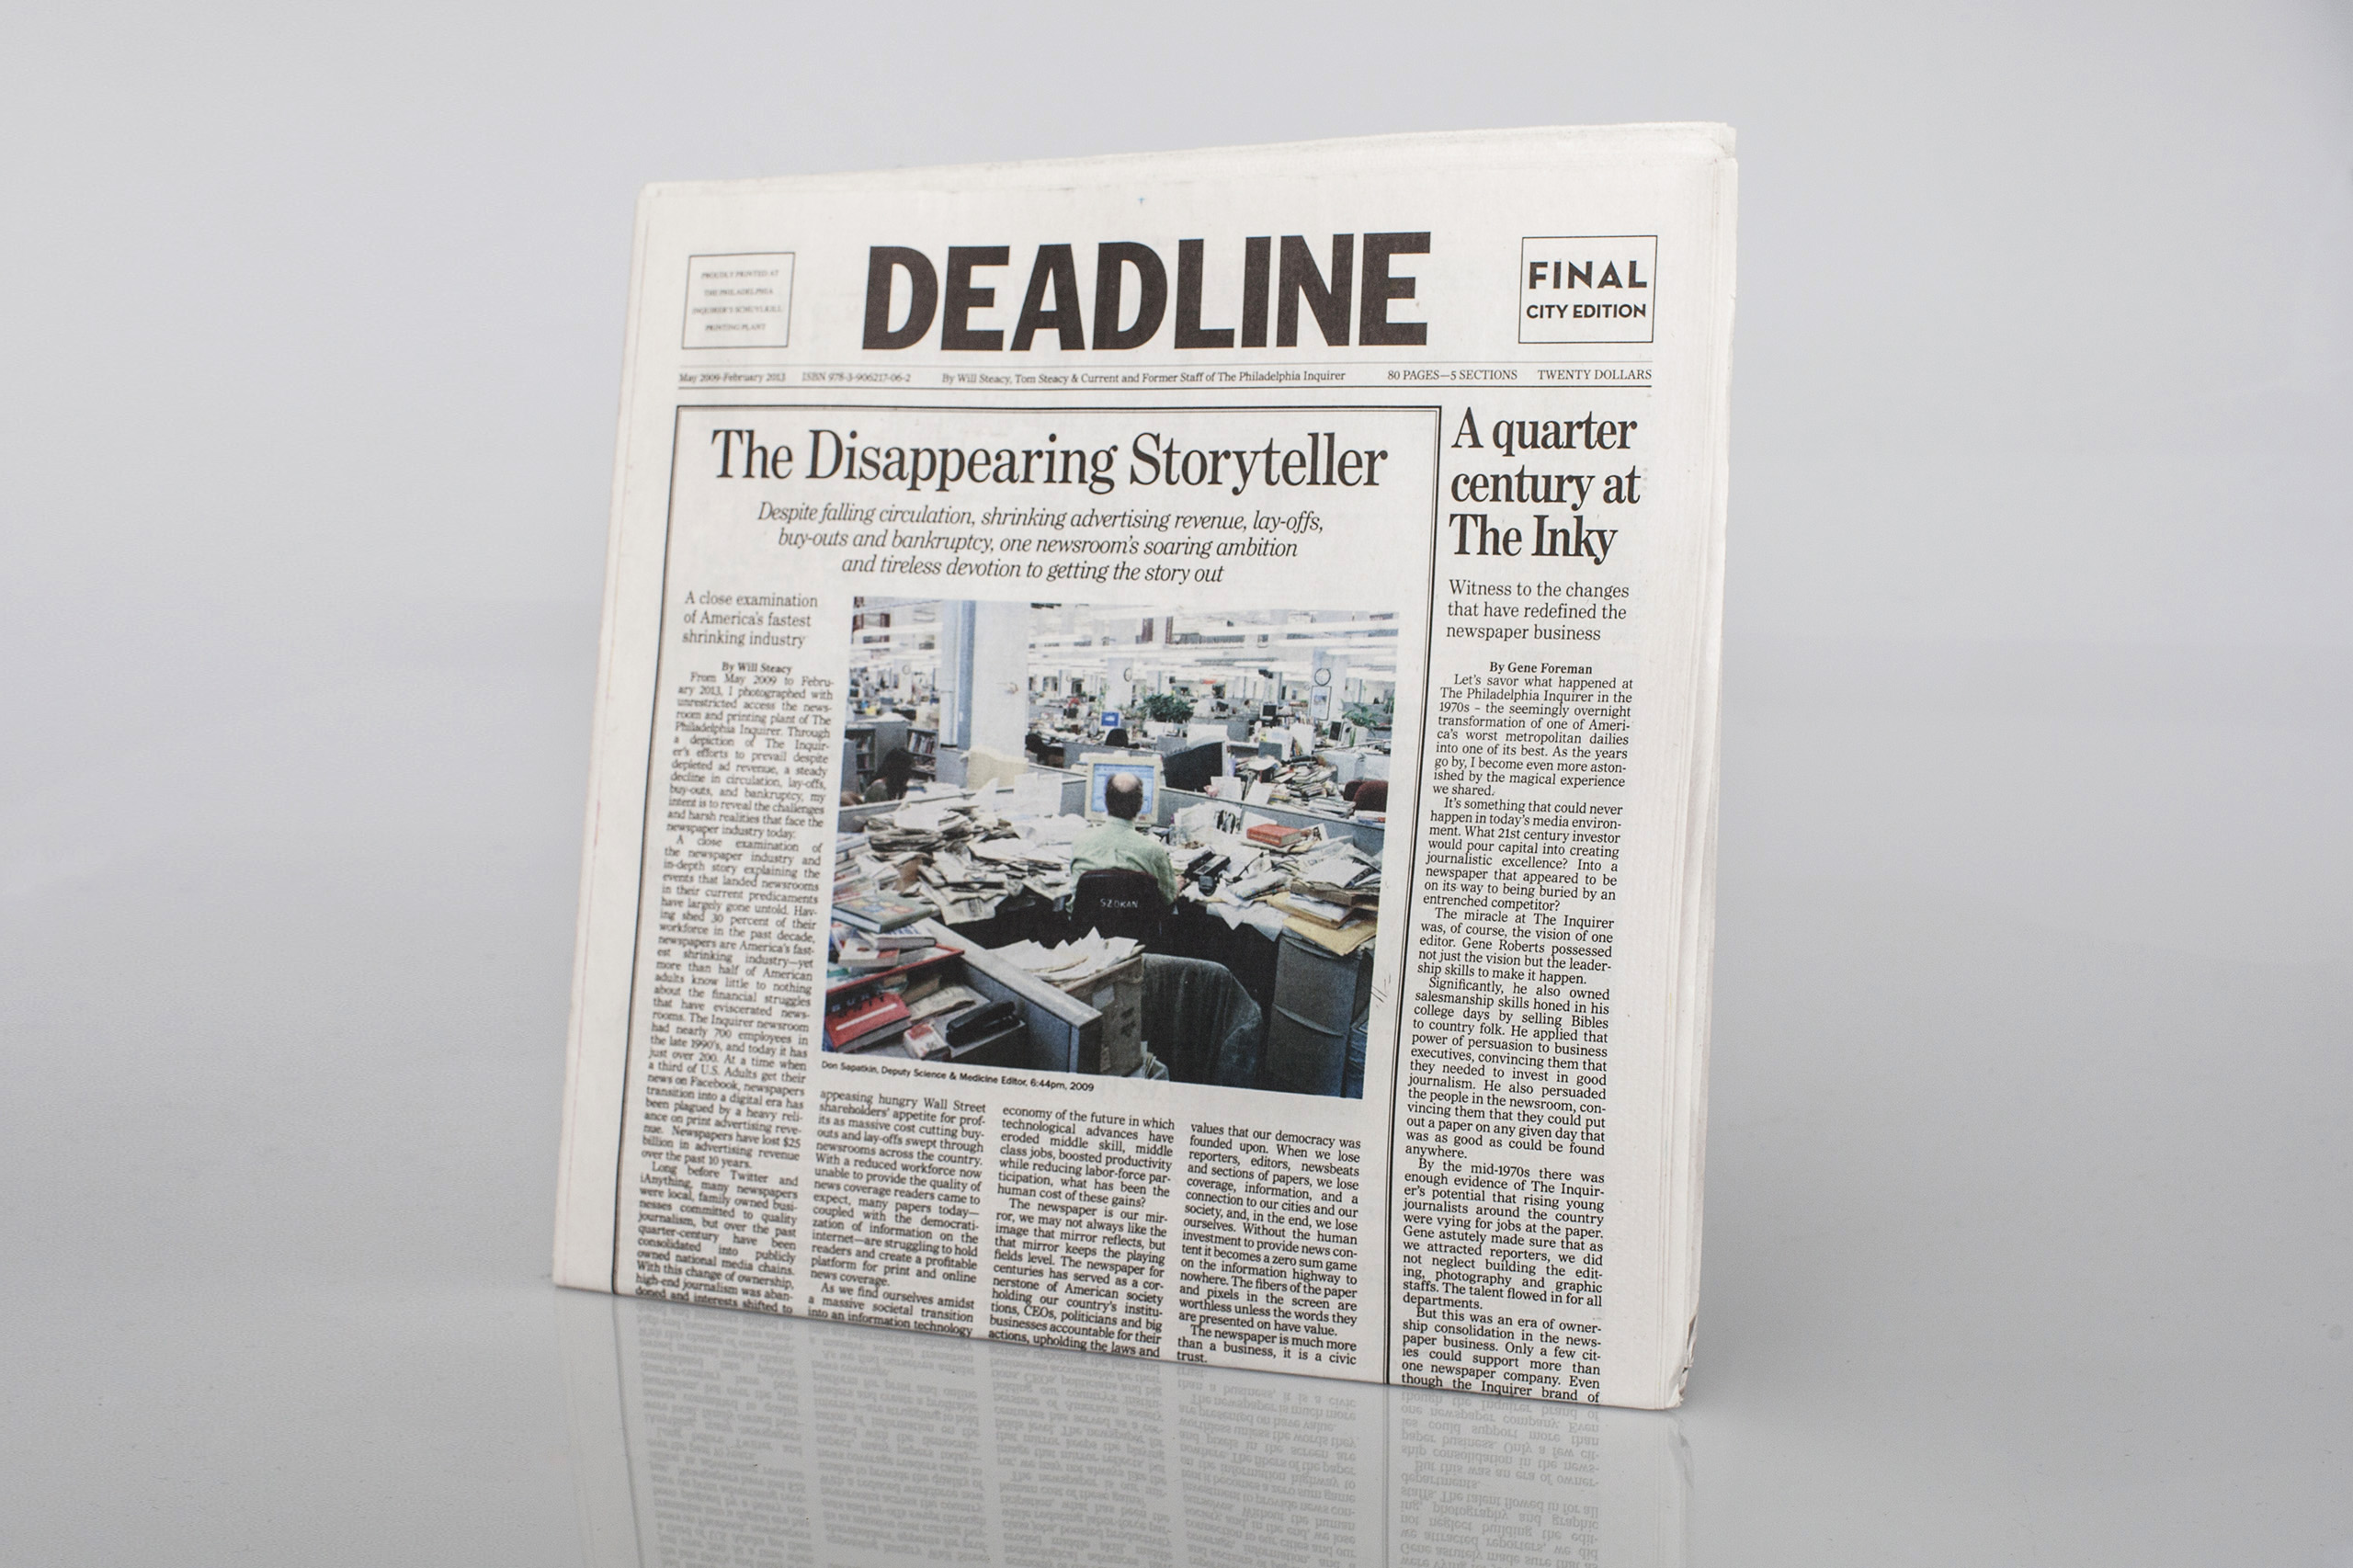 Deadline  by Will SteacyPublished by b.frank books